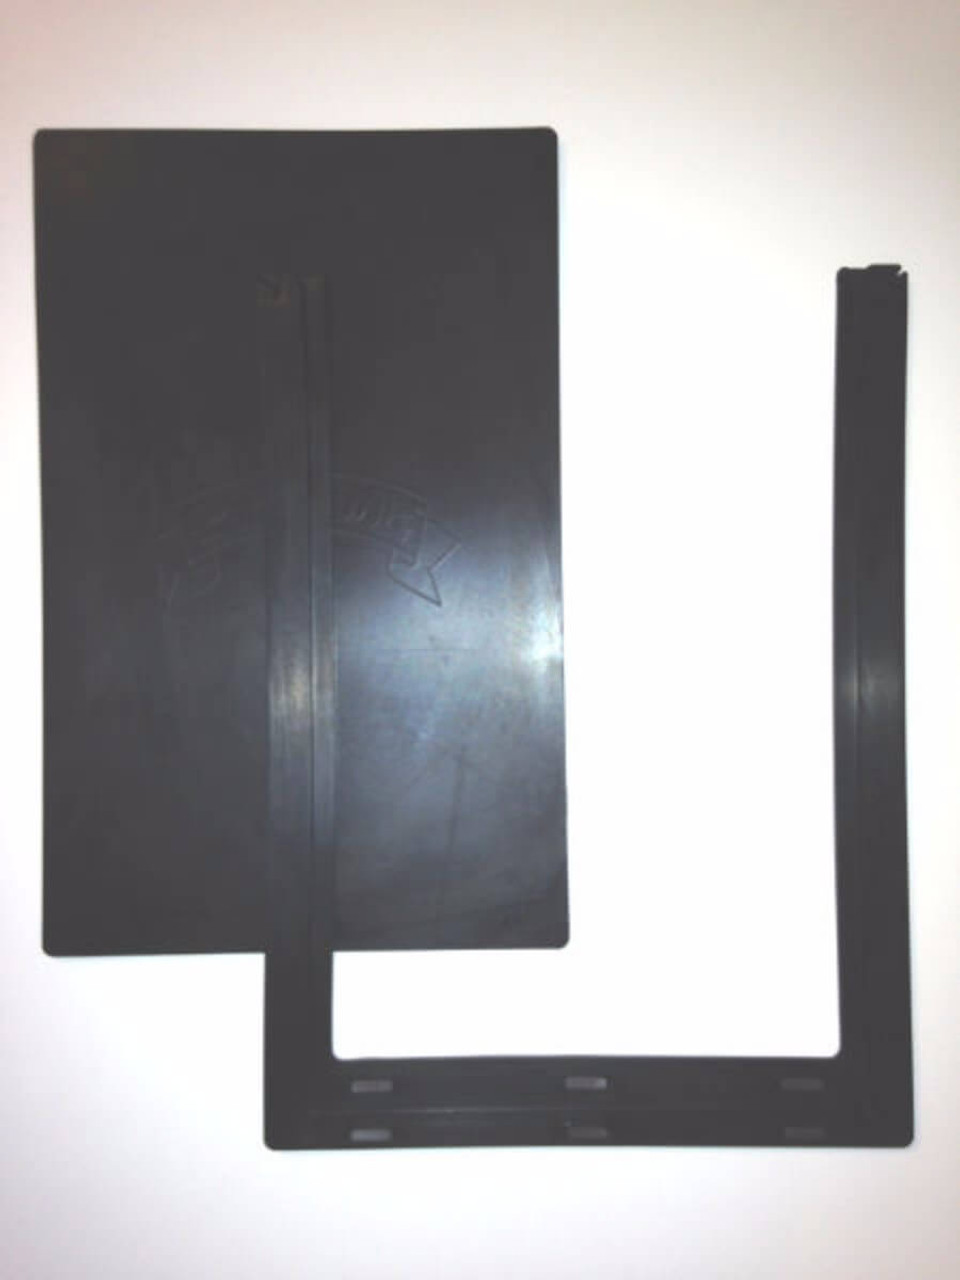 Merveilleux Pride Pet Door Flaps Have A Center Flap And An Outer U Shaped Flap And Are